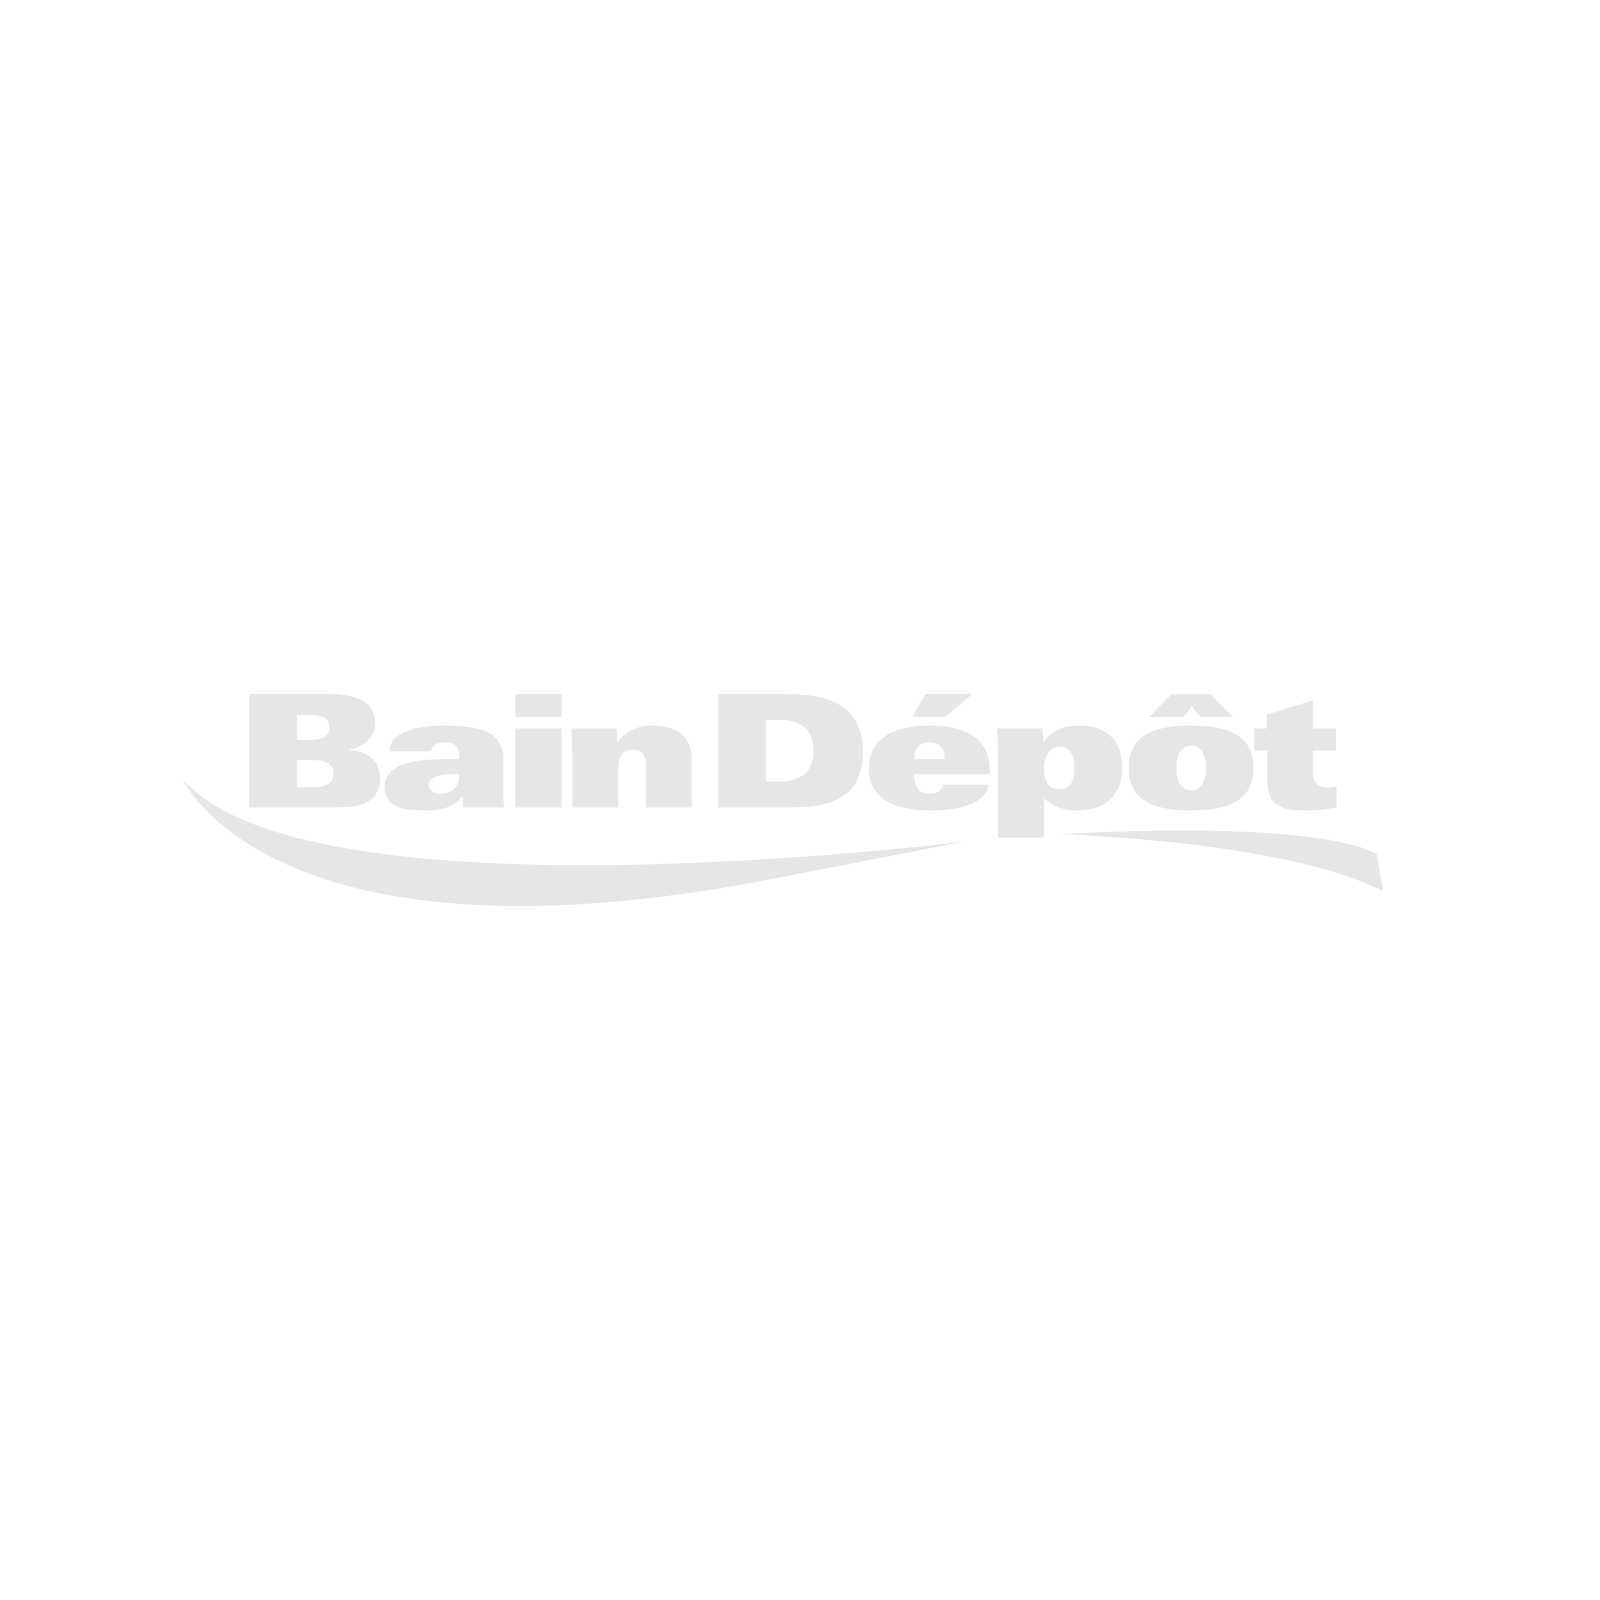 Lumawarm white heated toilet seat with nightlight for elongated bowl